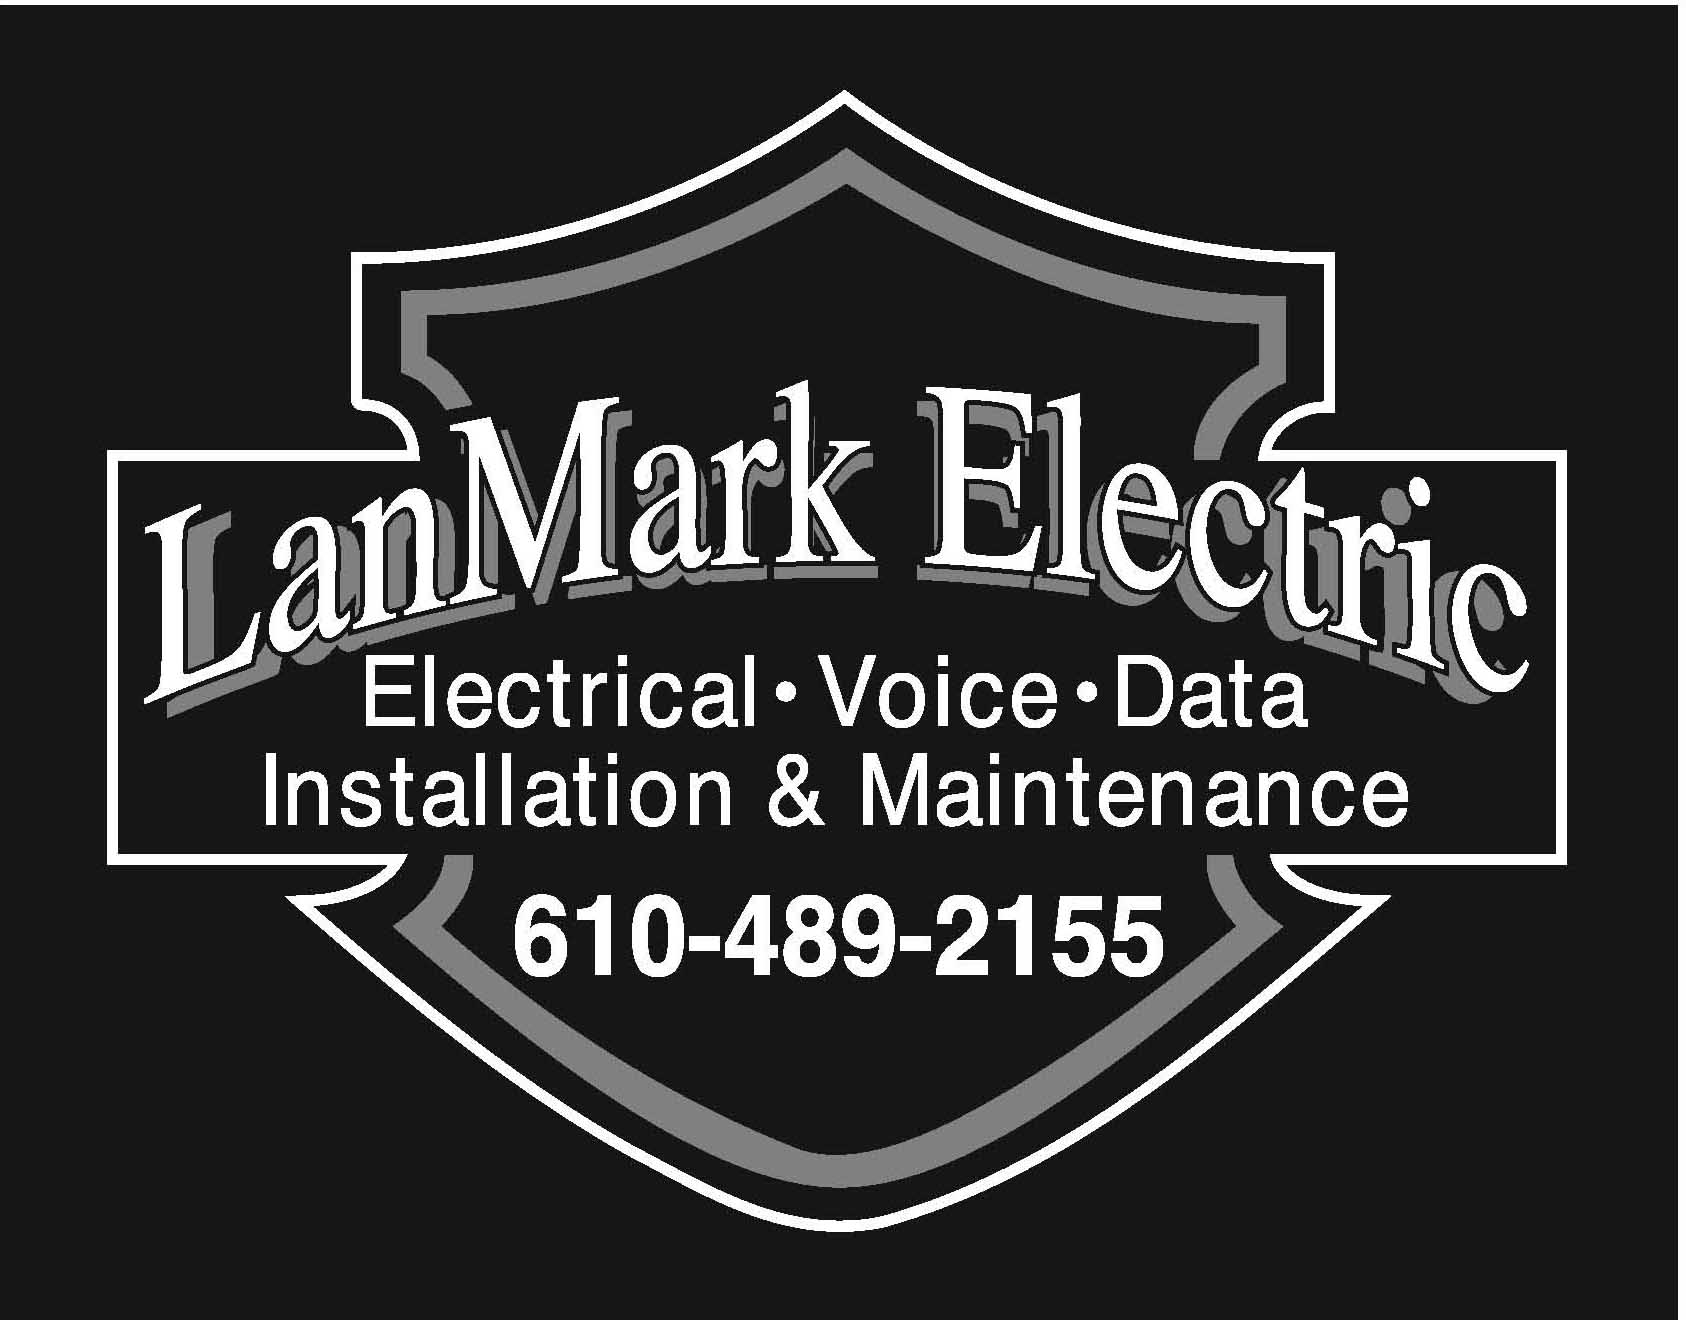 LanMark Electric